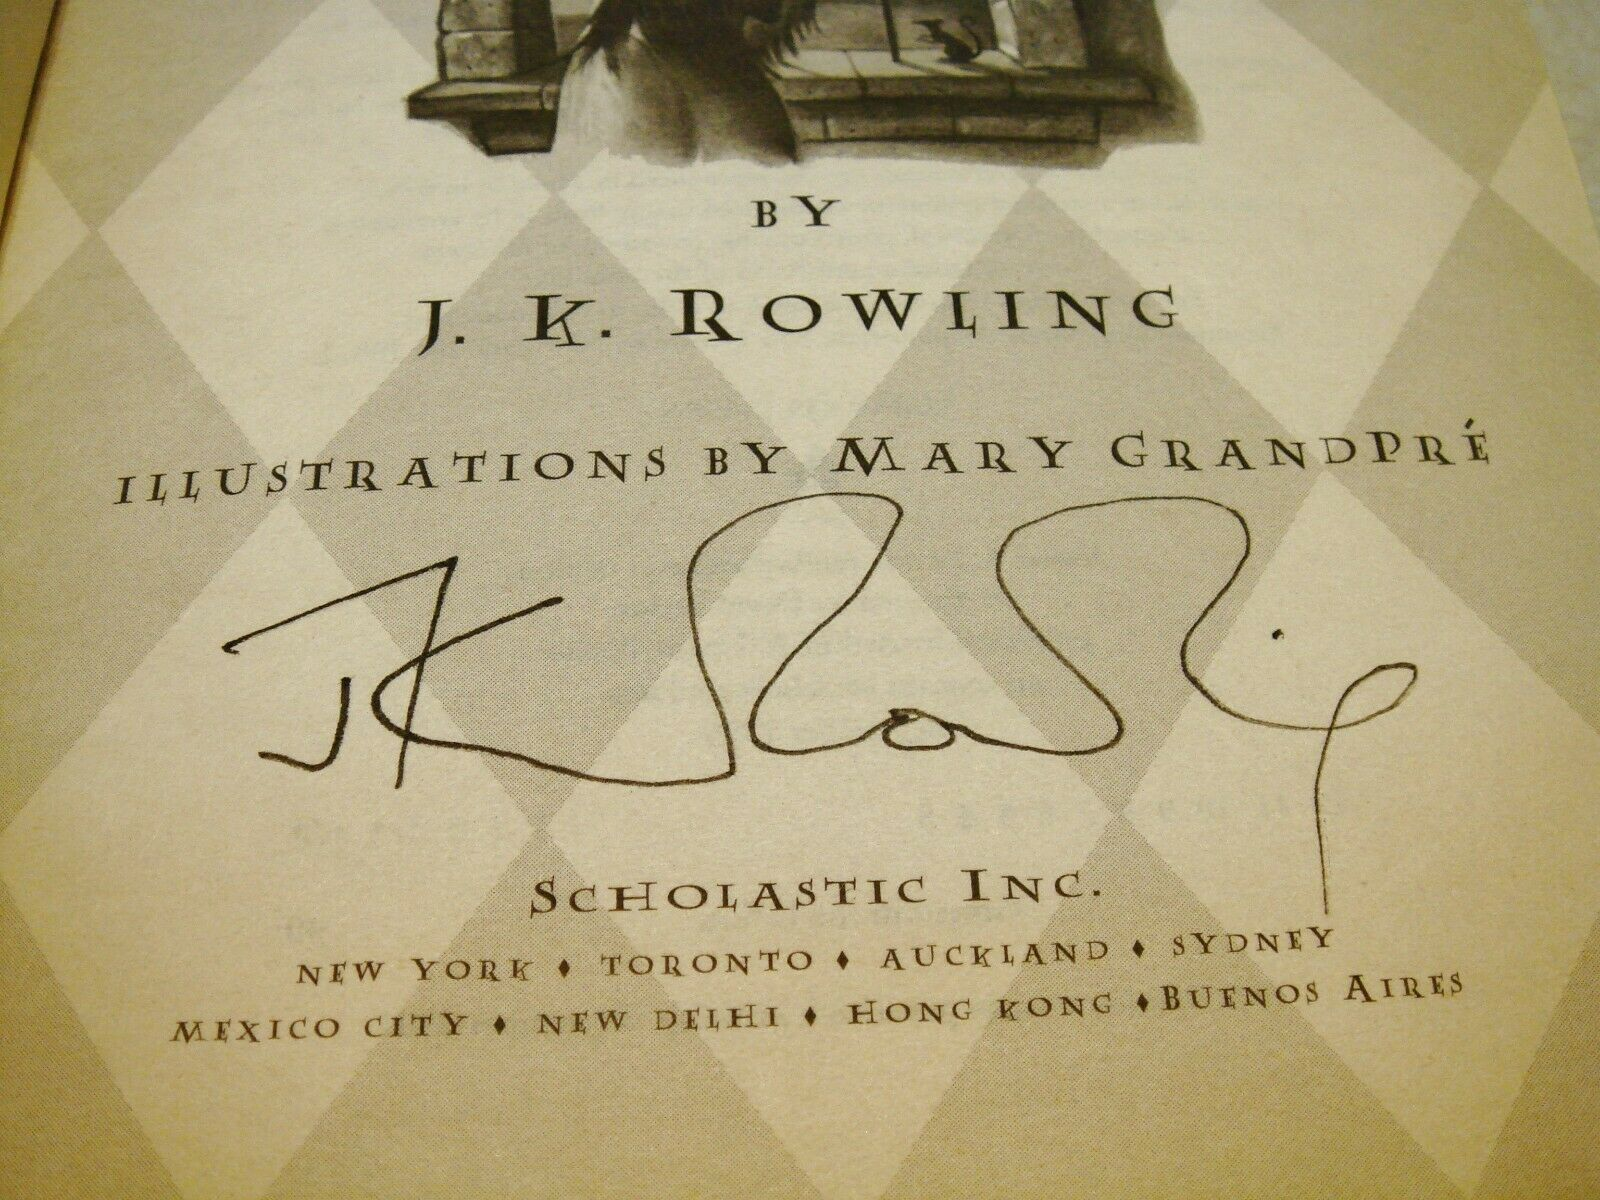 JK Rowling forgery found in a US softcover Harry Potter and the Prisoner of Azkaban